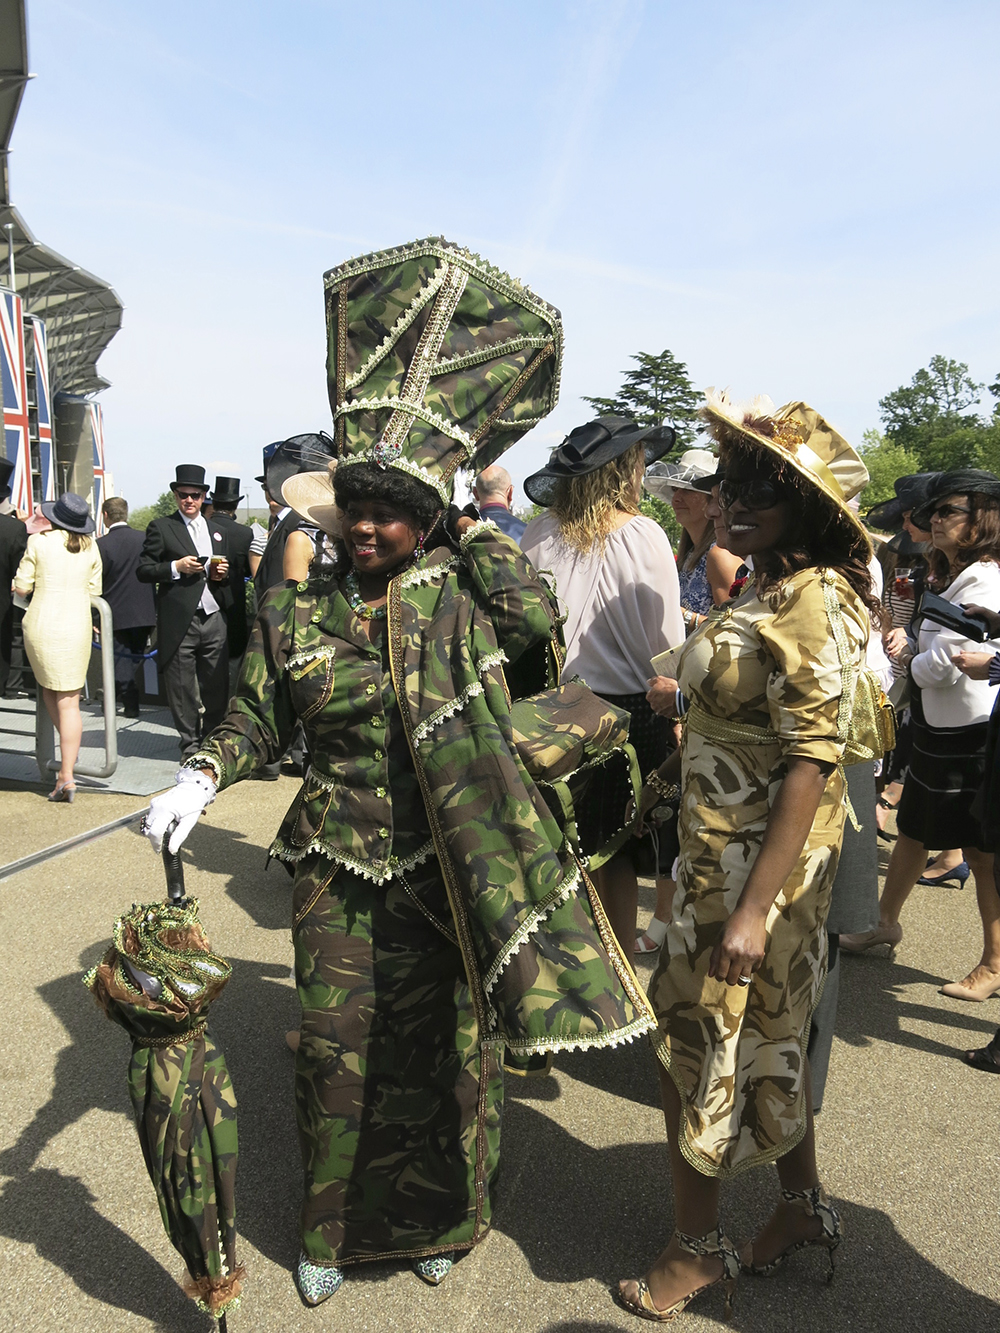 Camouflage at Royal Ascot